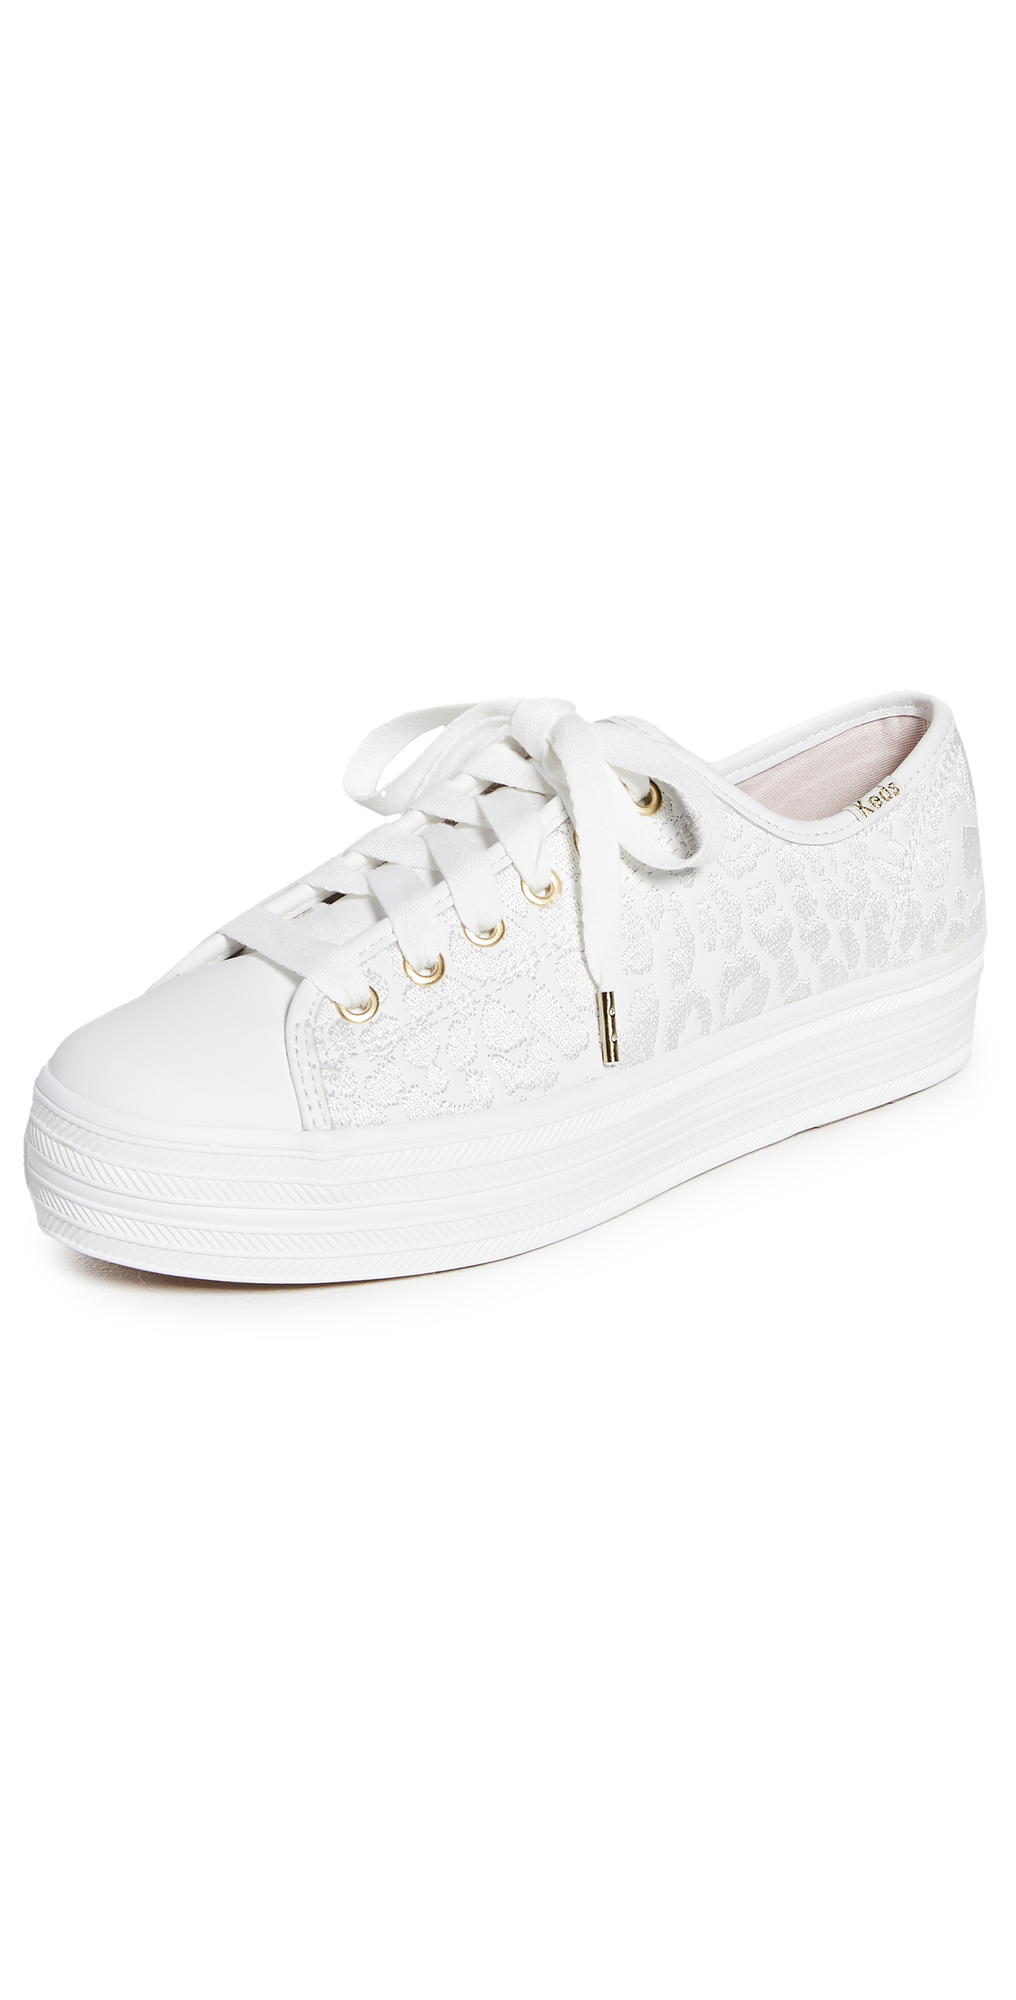 x Kate Spade Triple Kick Embroidered Leopard Sneakers